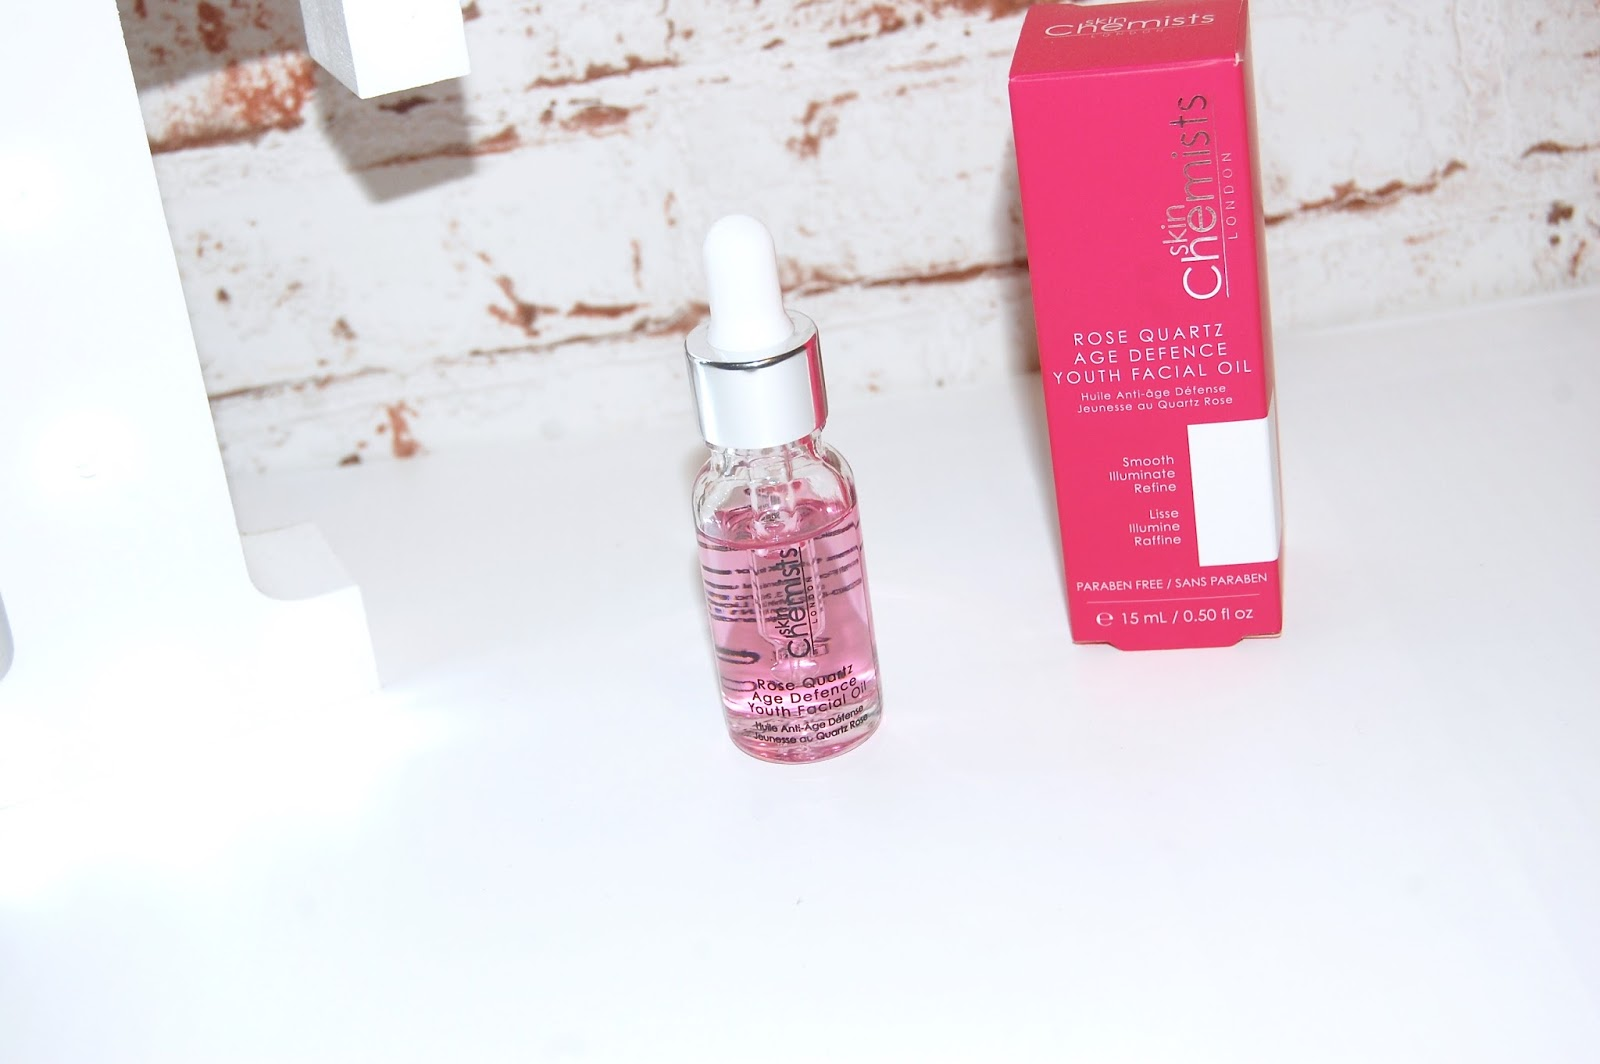 Skin Chemists Rose Quartz Age Defence Youth Facial Oil